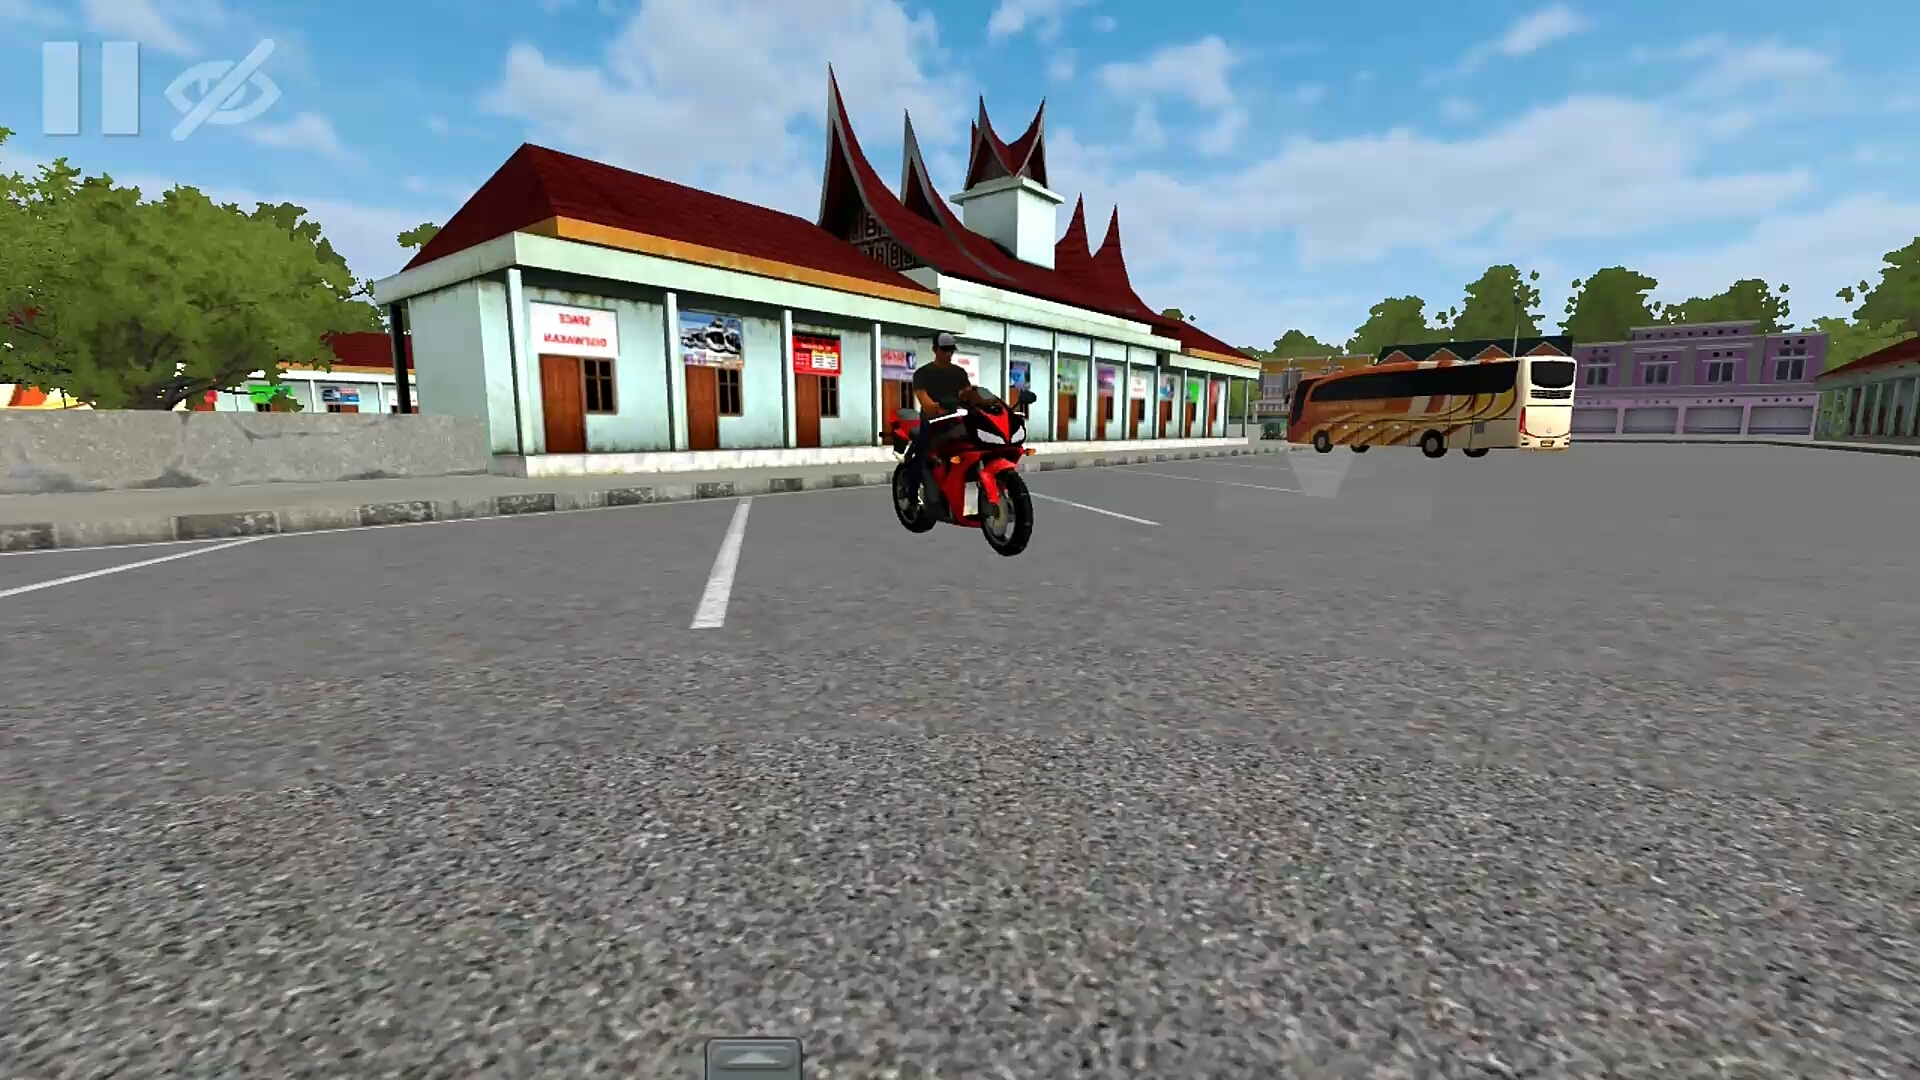 Download Motorcycle Mod for BUSSID, , Bus Simulator Indonesia Mod, BUSSID mod, Gaming News, Gaming Update, Mod, Mod for BUSSID, Motorcycle Mod, SGCArena